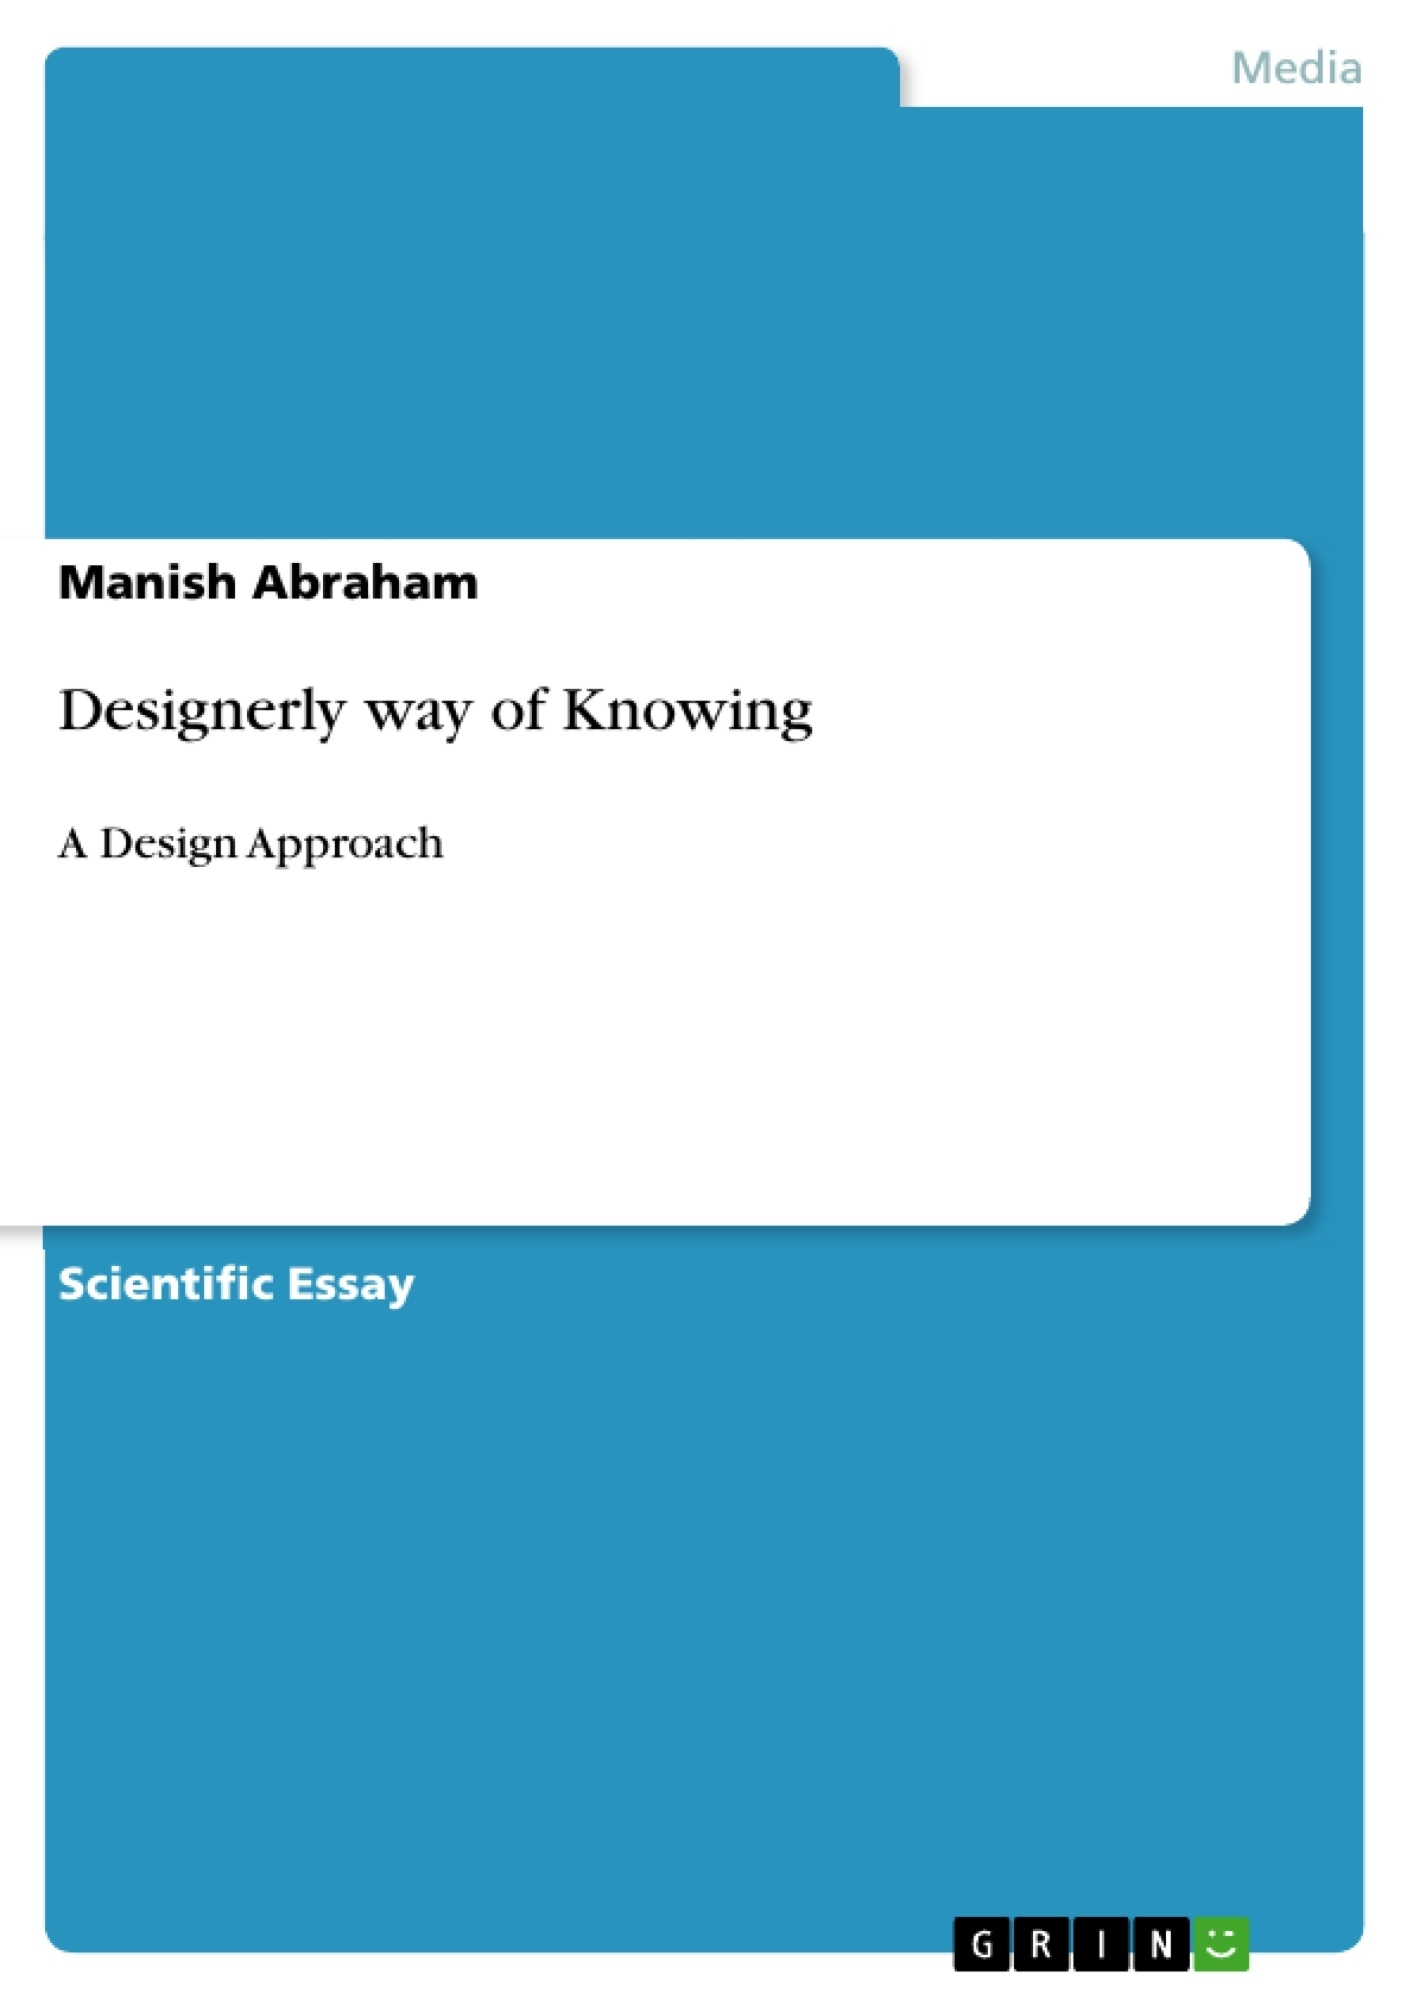 Title: Designerly way of Knowing